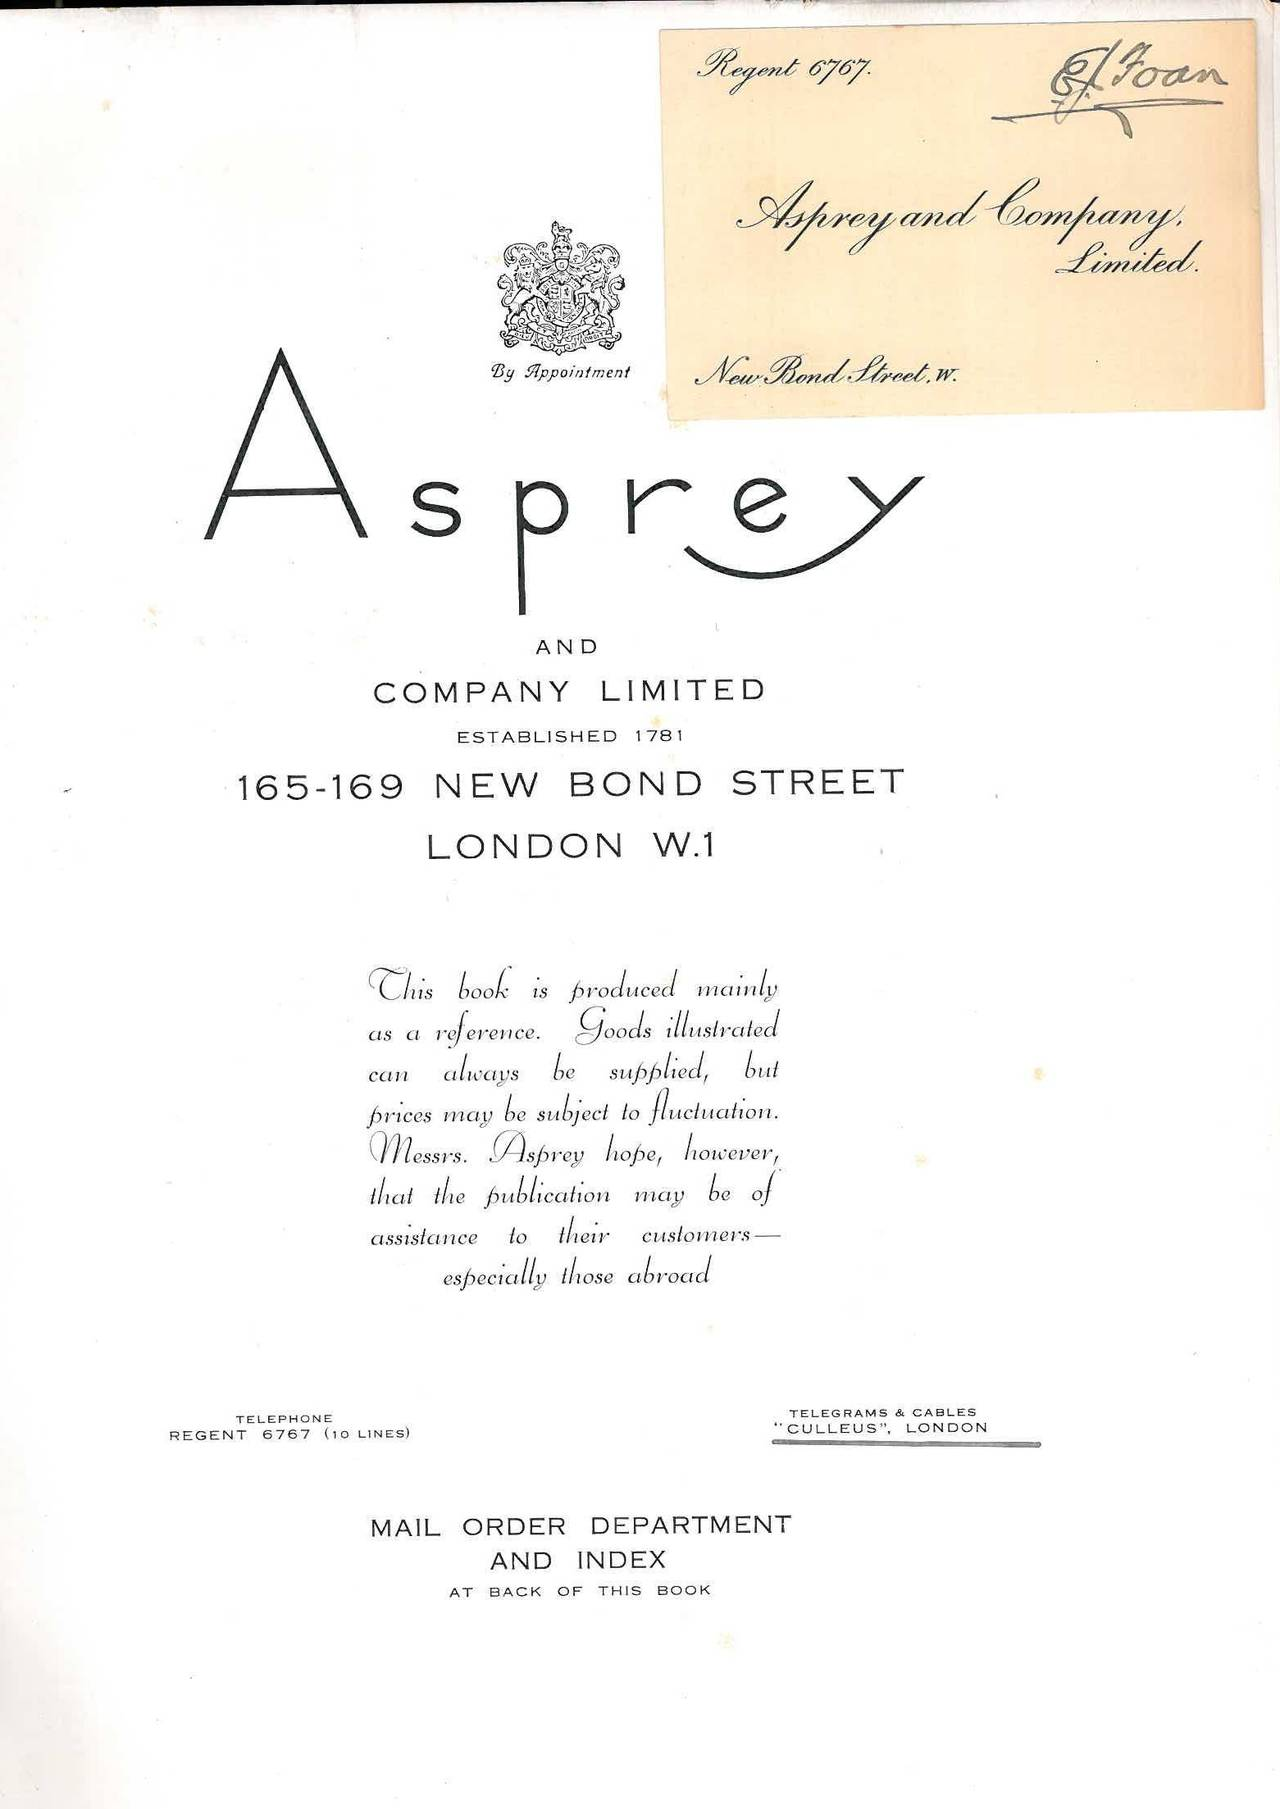 This is the luxury edition of Asprey and Company Limited Mail Order Catalogue from around 1930, with an imitation crocodile skin cover and velum spine. 205 pages (43 of which are in colour) which are fully illustrated with Art Deco styled items